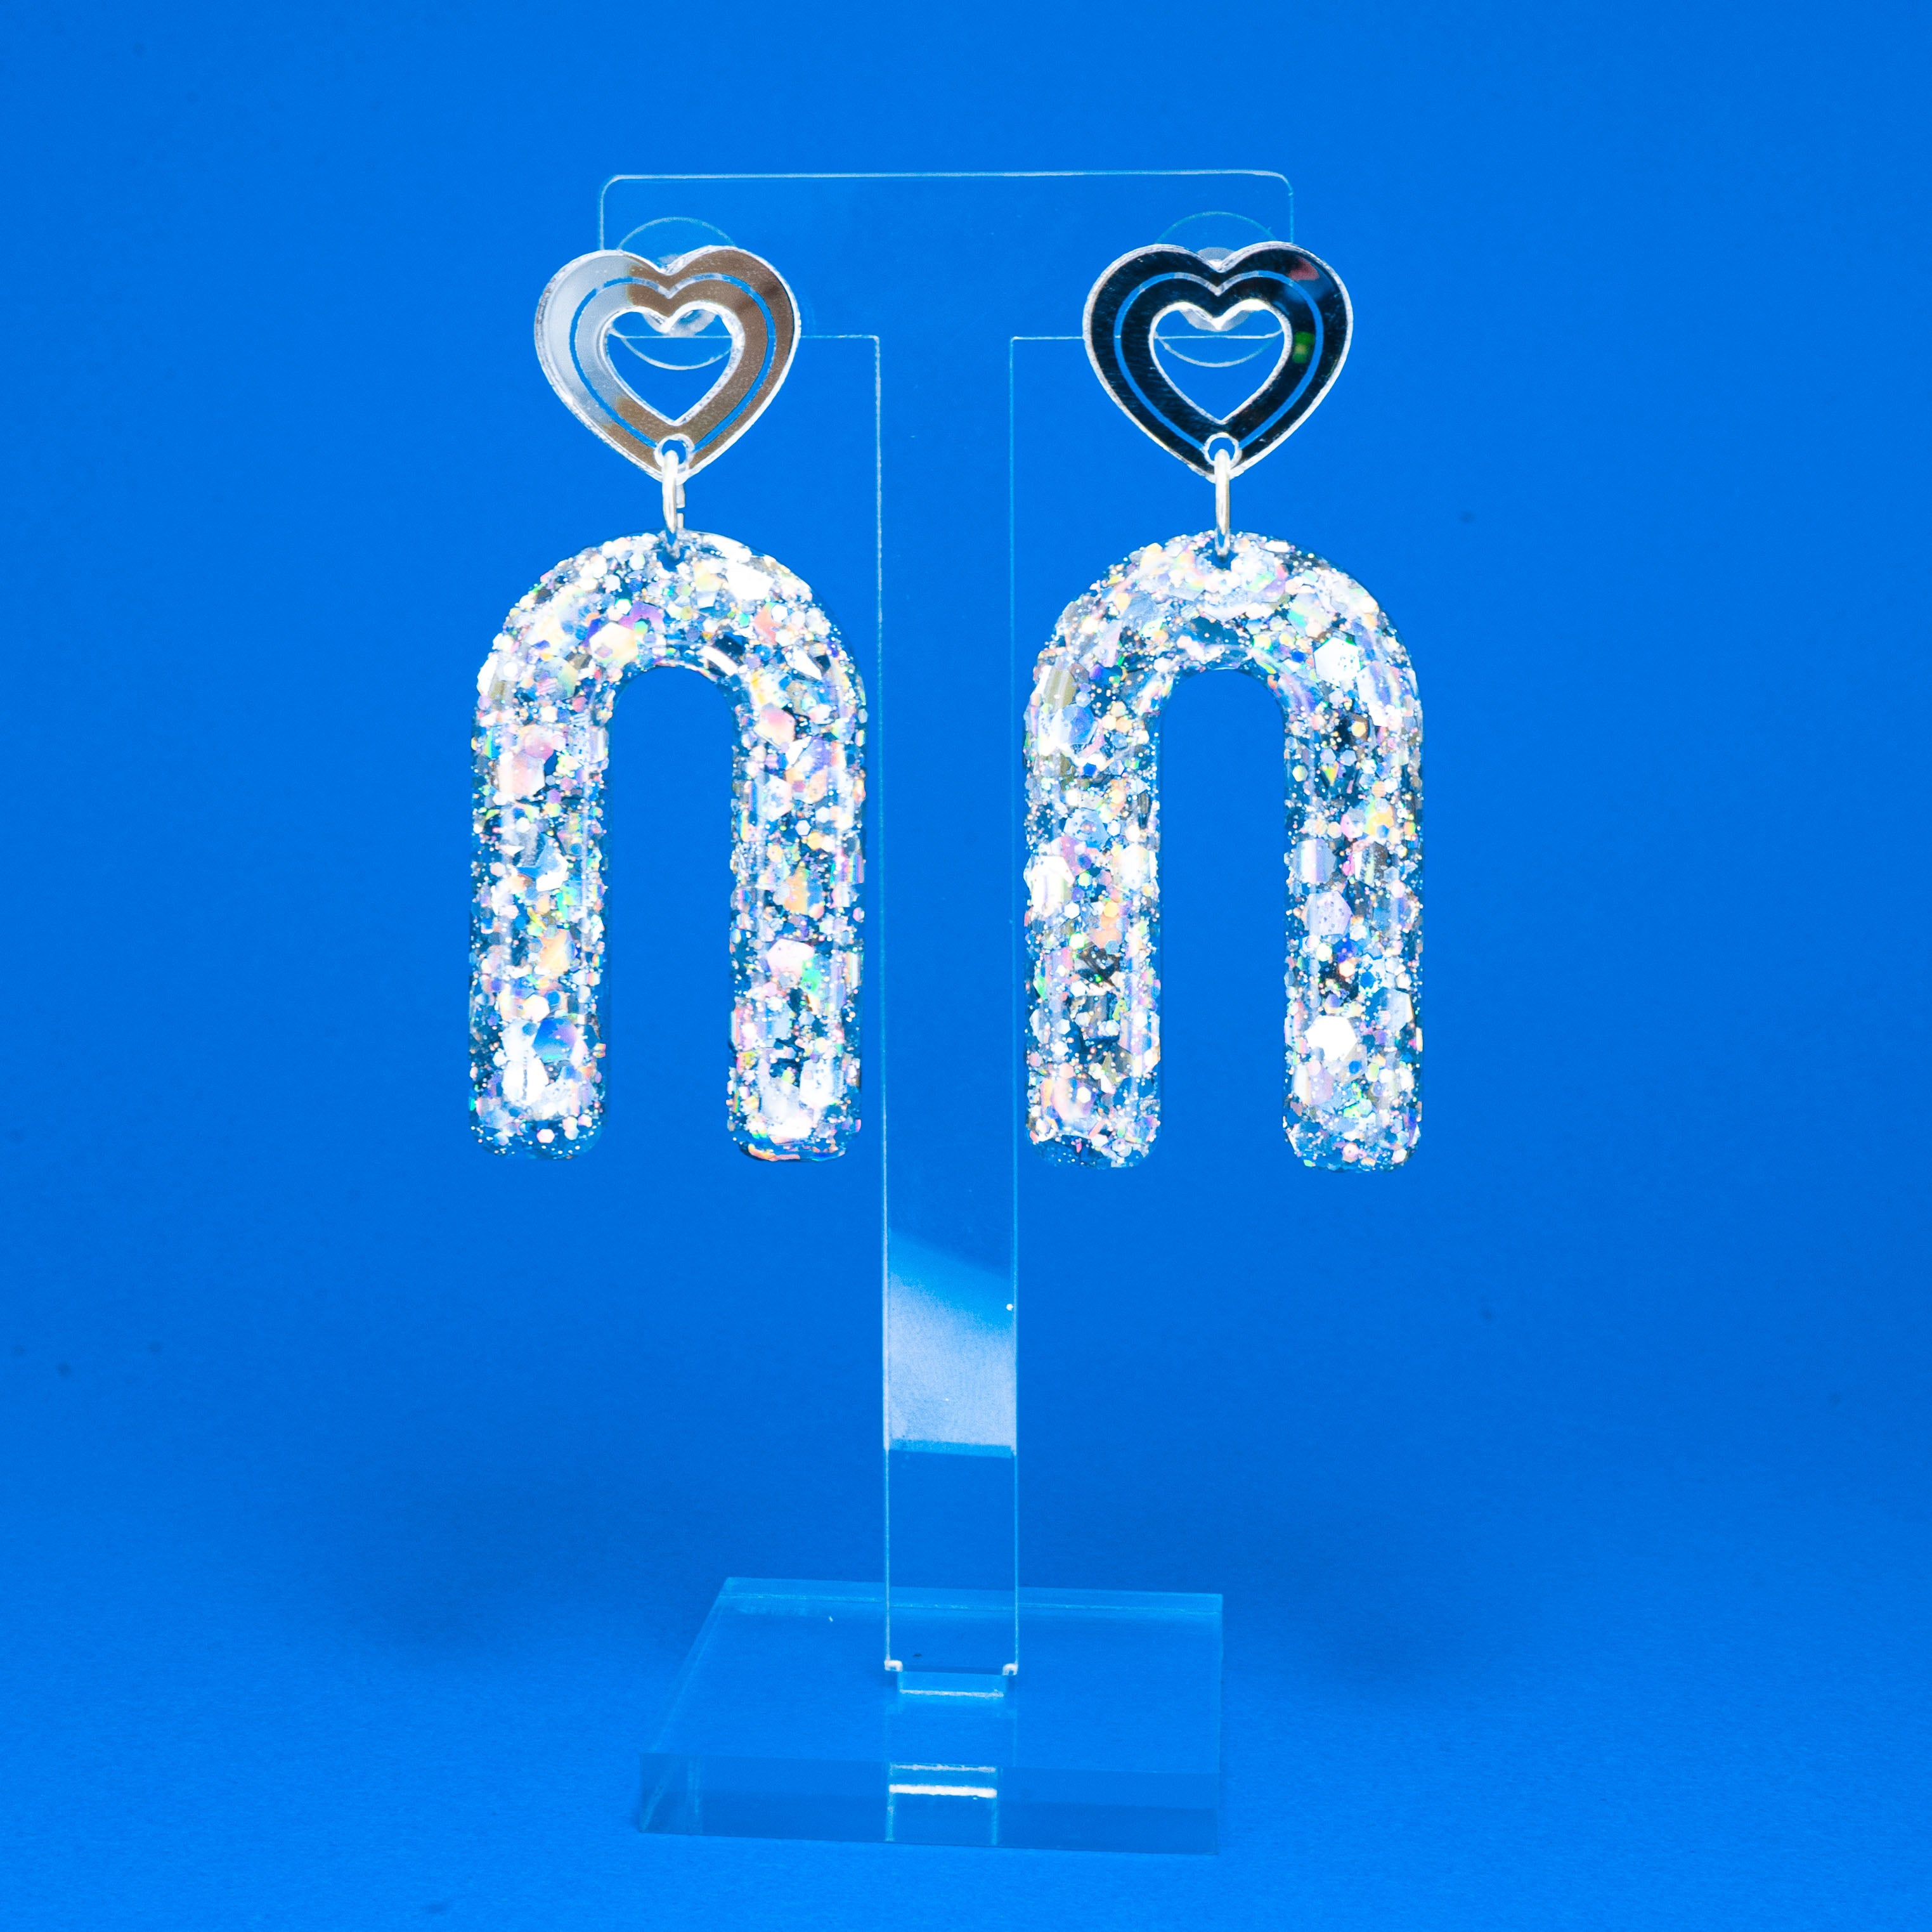 Icebreaker holographic mirror heart dangles